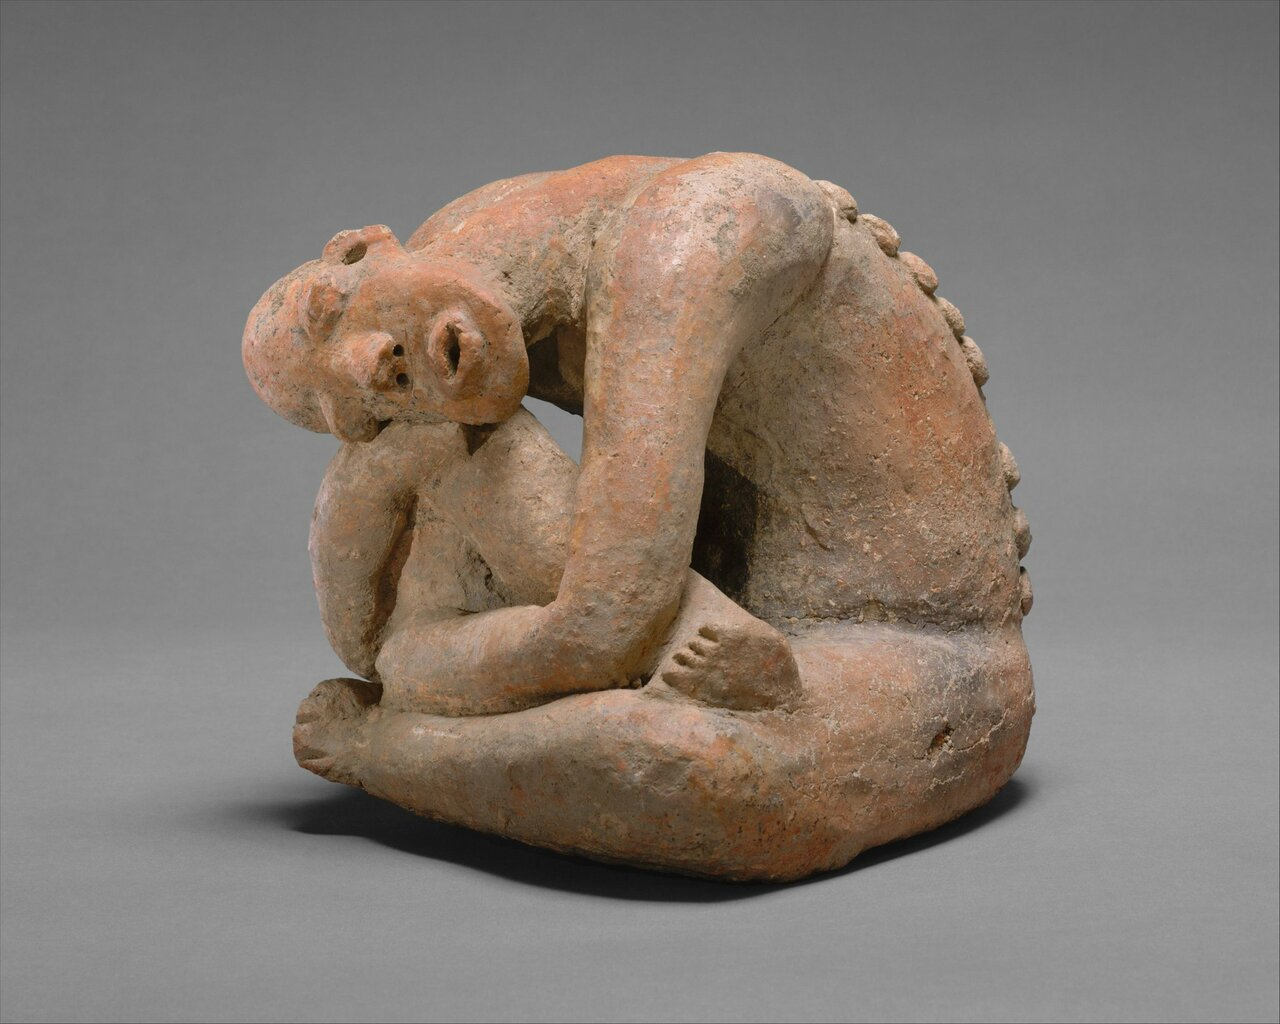 RT @metmuseum: This terracotta sculpture comes from Jenne-jeno, the oldest known city in sub-Saharan Africa. http://met.org/1PTLtgz http://t.co/8w2xZJineB